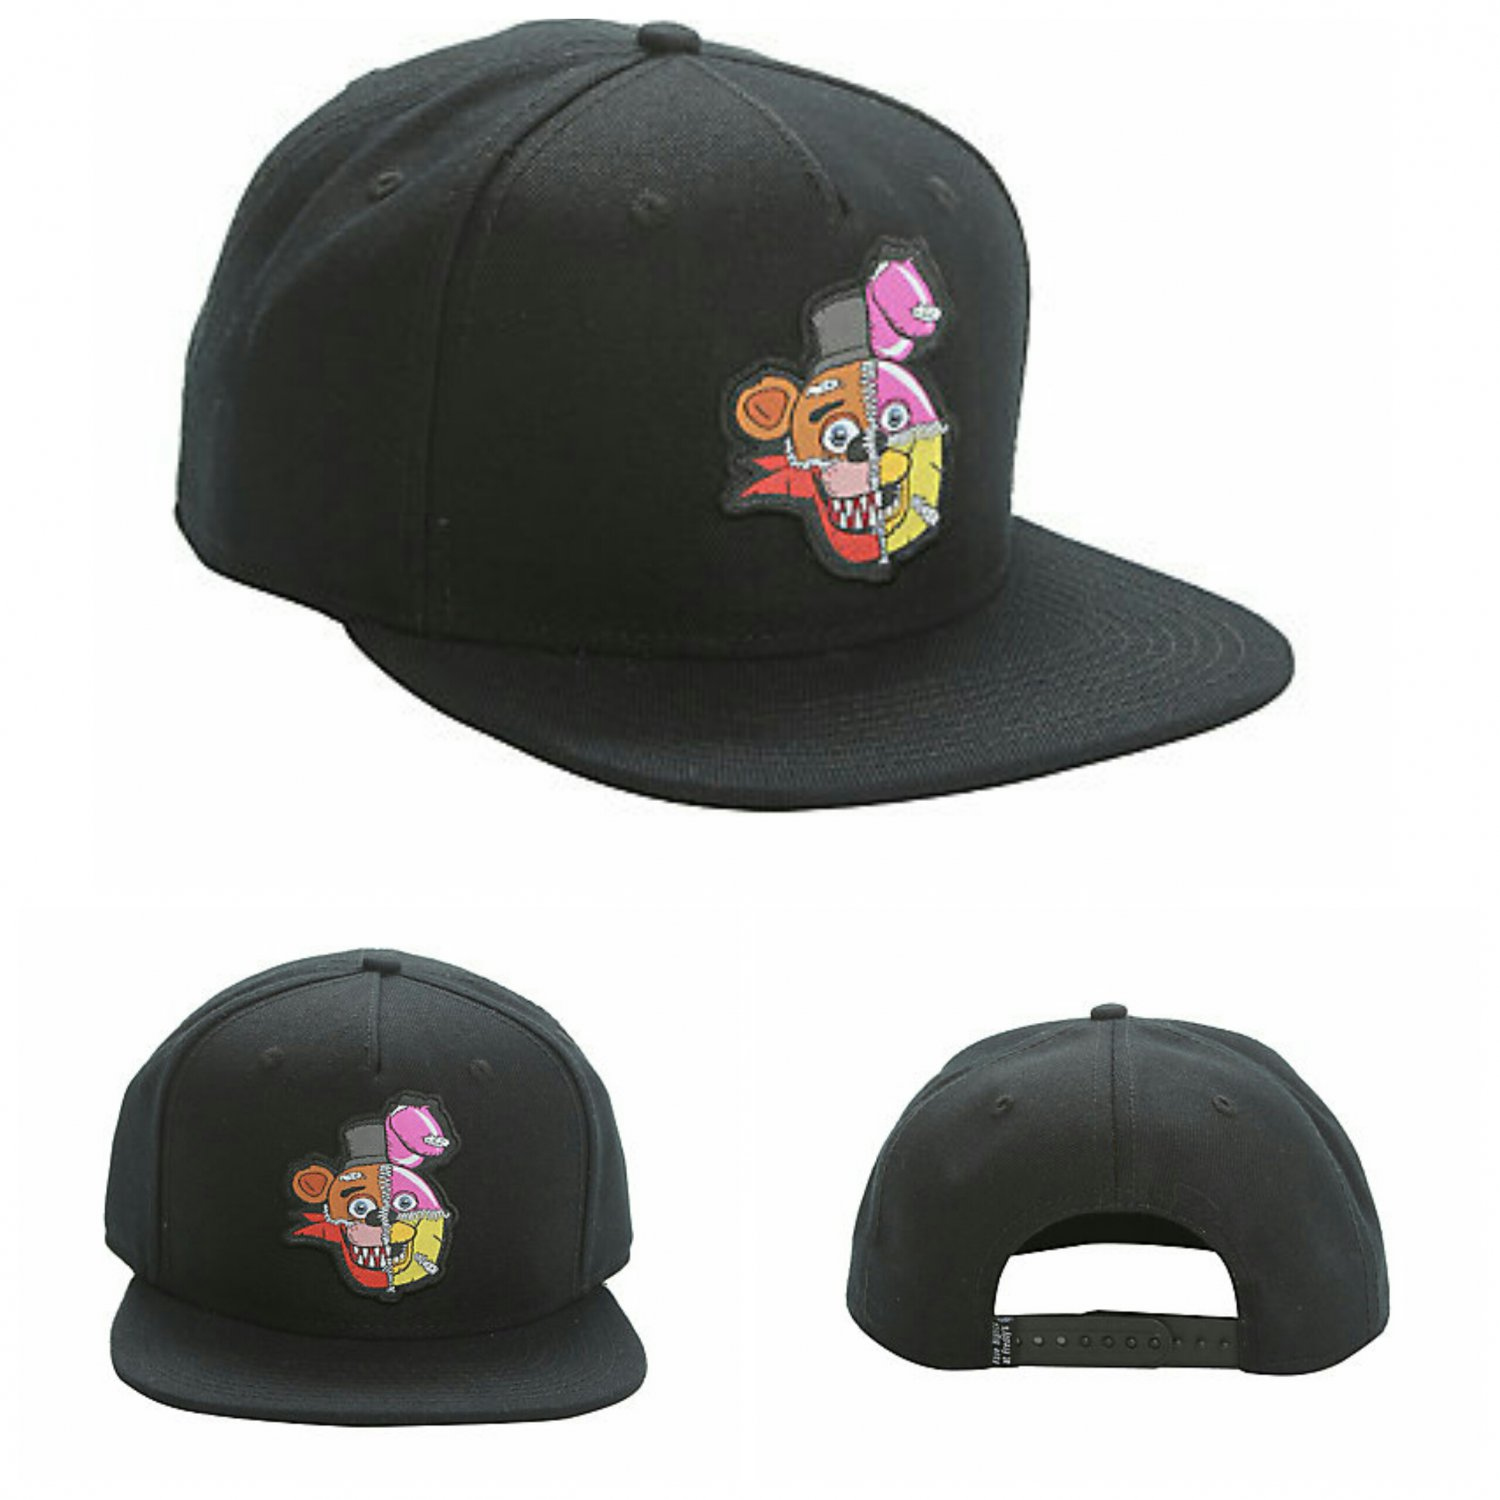 big sale 347a2 fb247 17157 10535968 808kcreations. five nights at freddys fanf stitched  characters snapback hat cap black hot topic ...